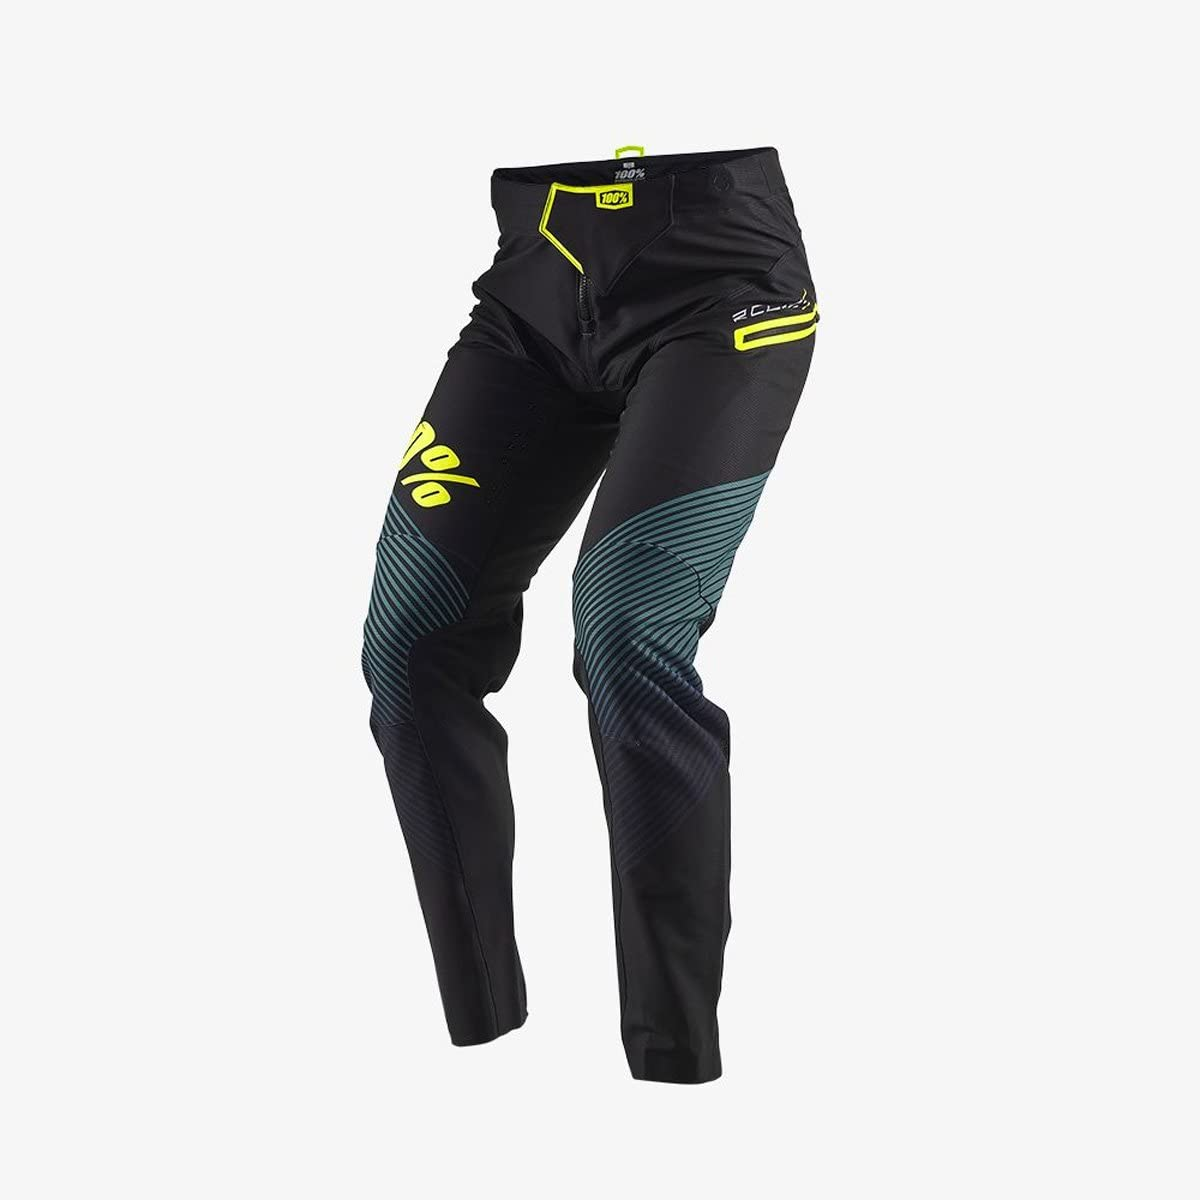 Image of 100% R-Core-X DH Pant - Men's Pants